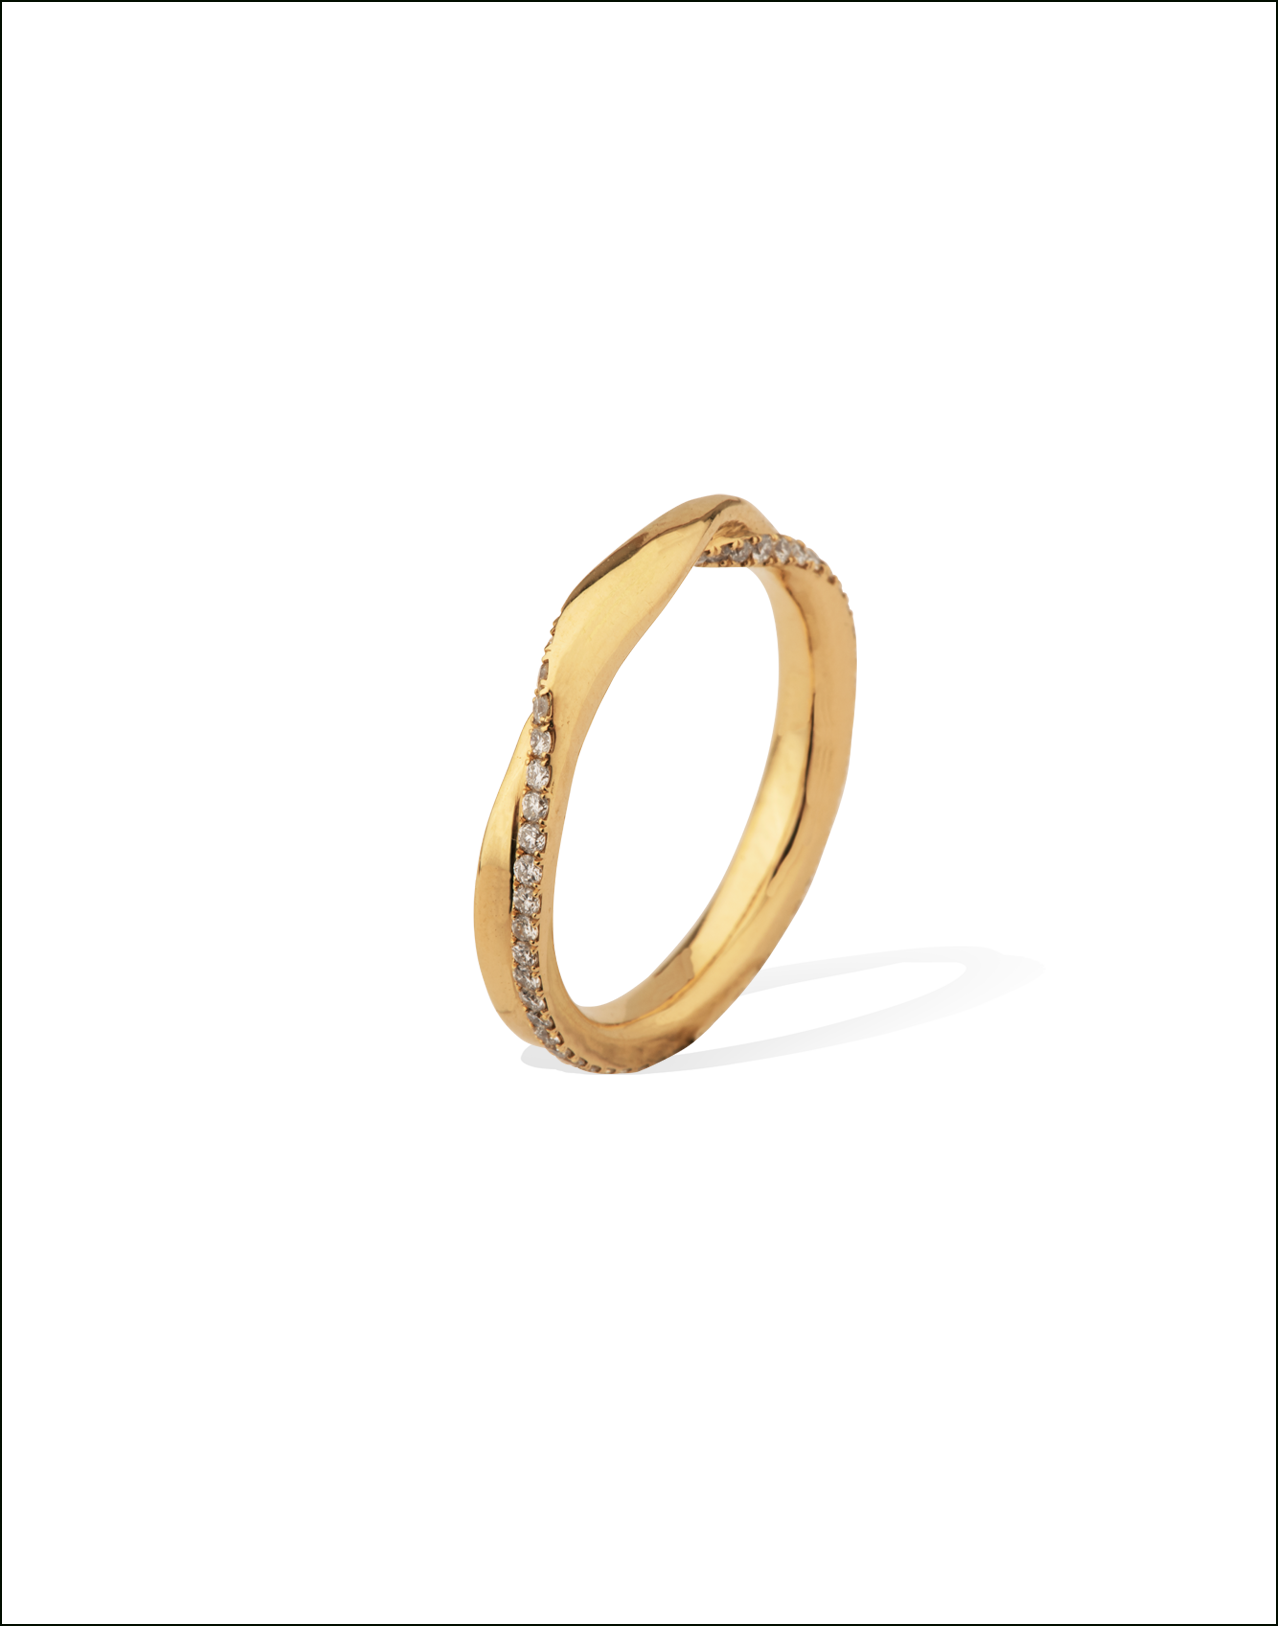 Completedworks-Wedding-Band-Doublement-Gold-Ring-3-1.png